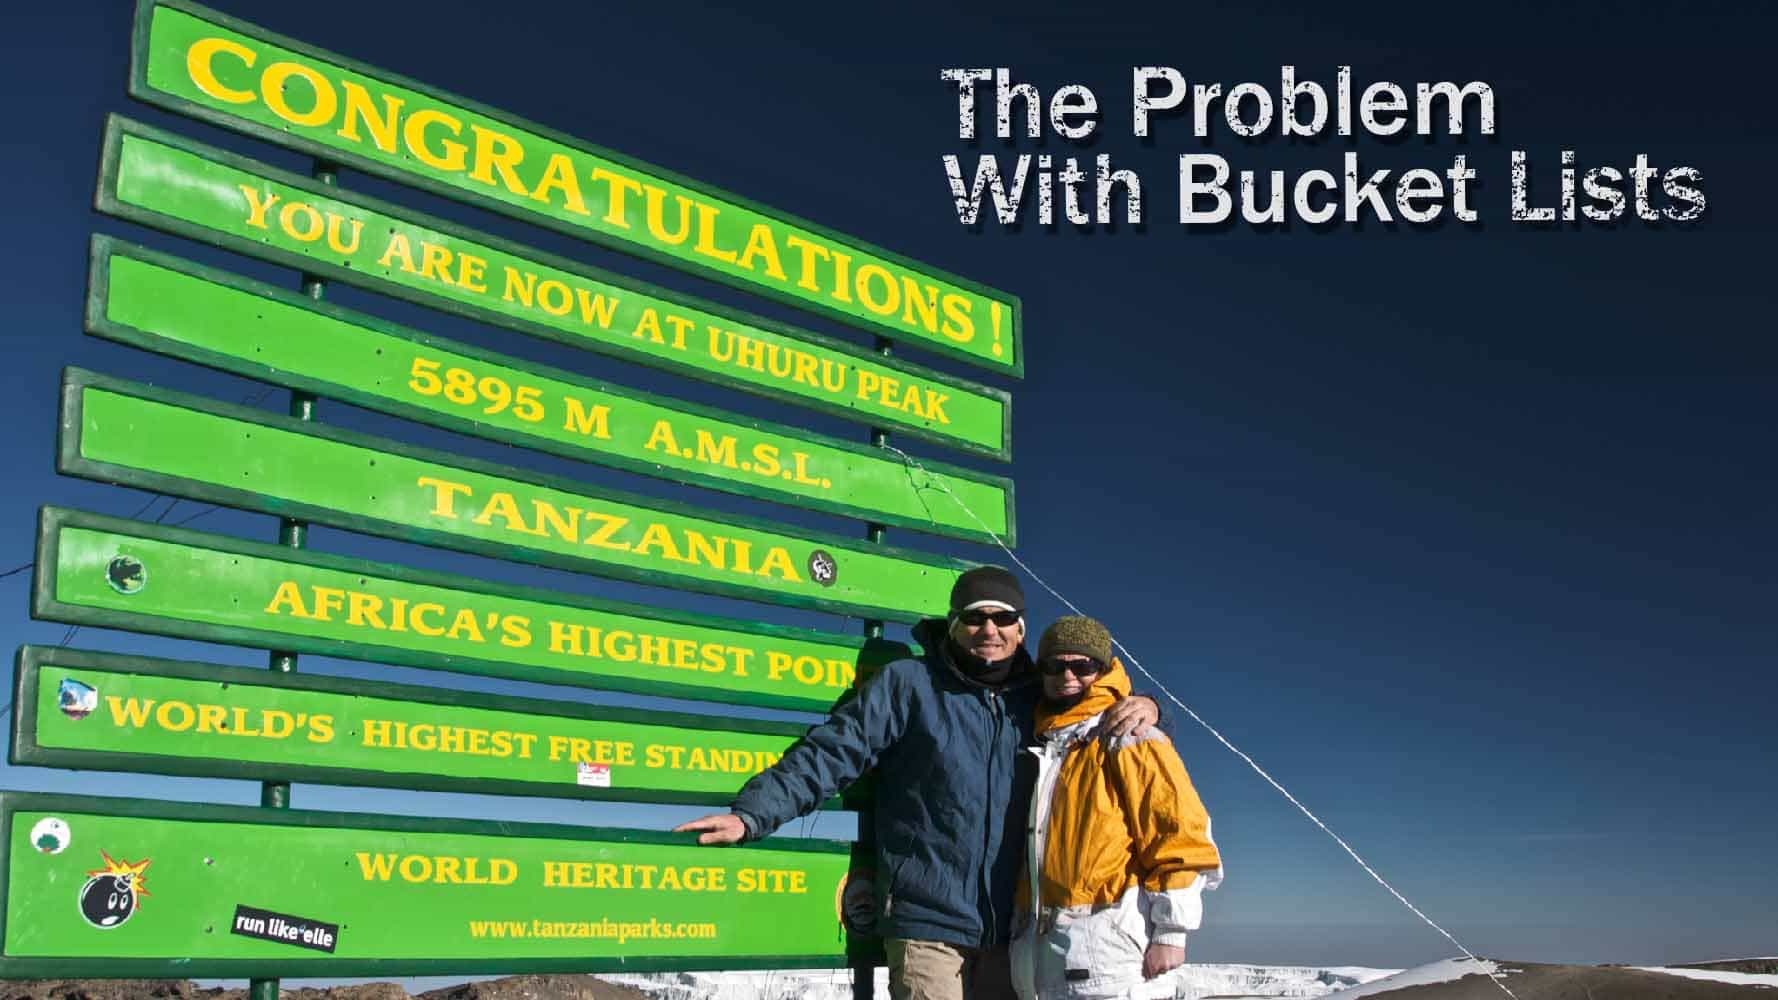 The Problem With Bucket Lists